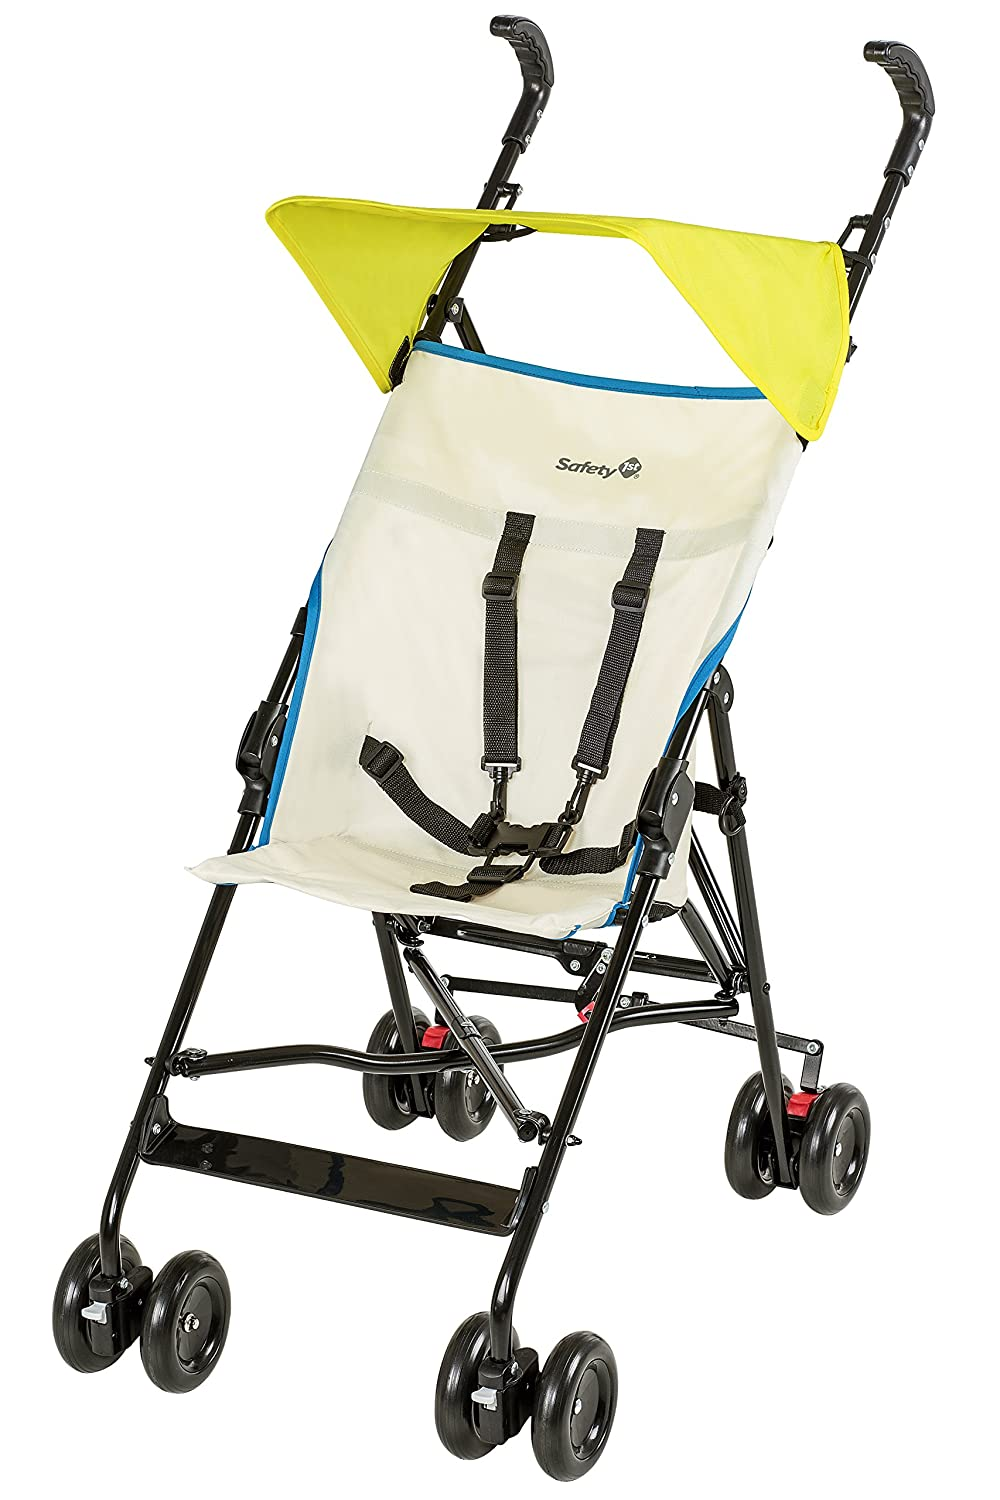 Safety 1st Peps - Silla ligera, color Summer Yellow Dorel 1182328000